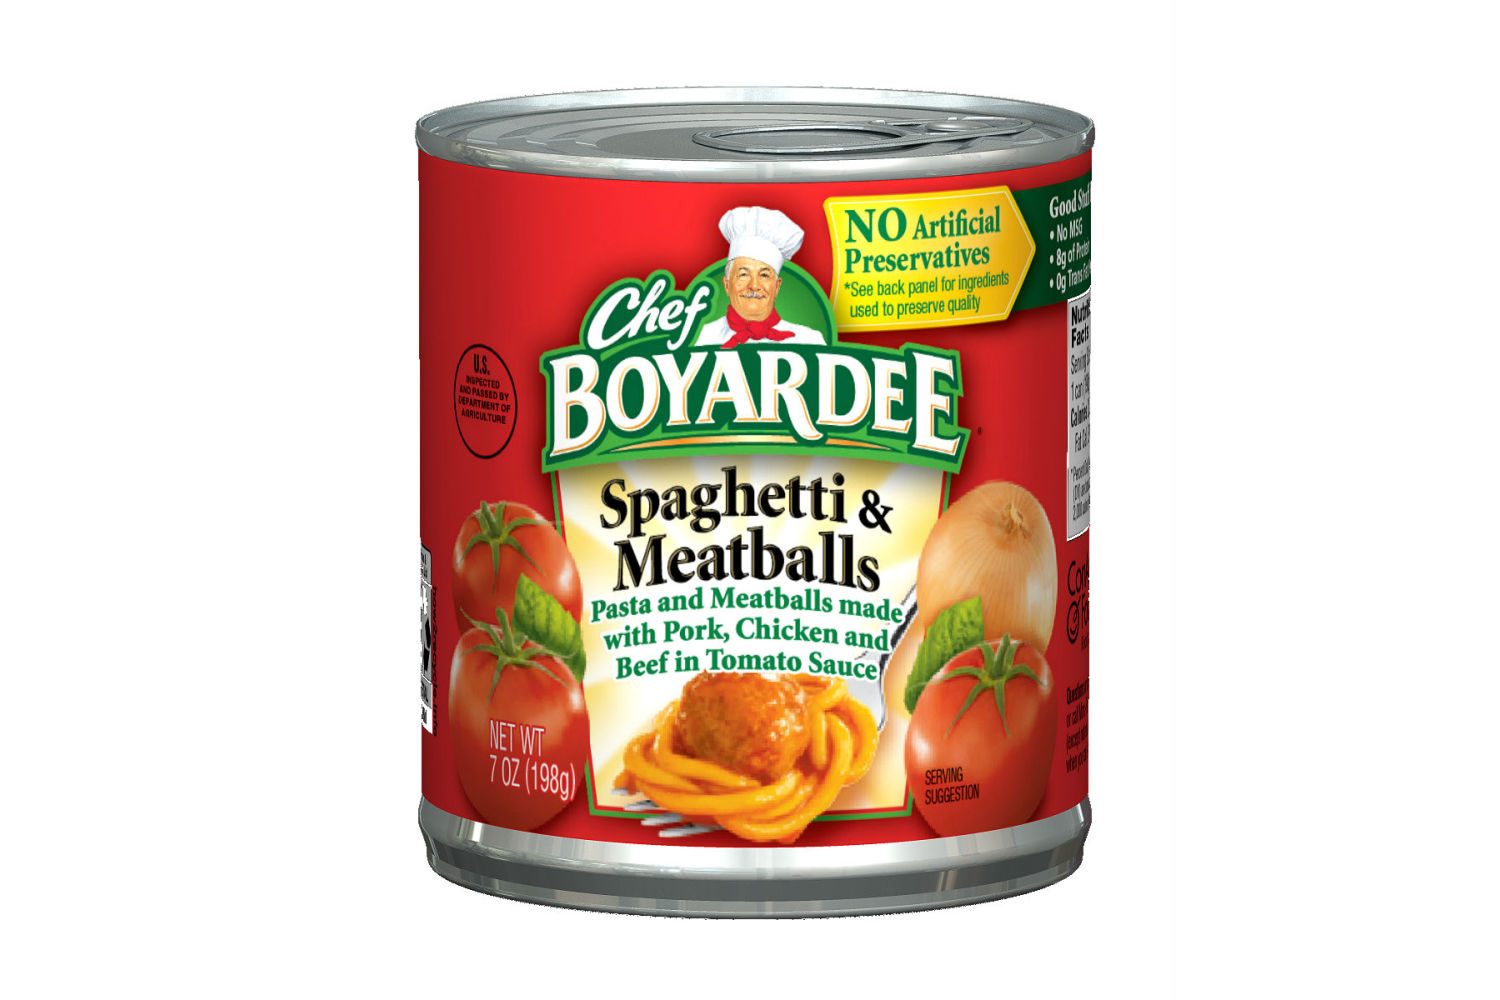 CHEF BOYARDEE Easy Open Spaghetti and Meatballs